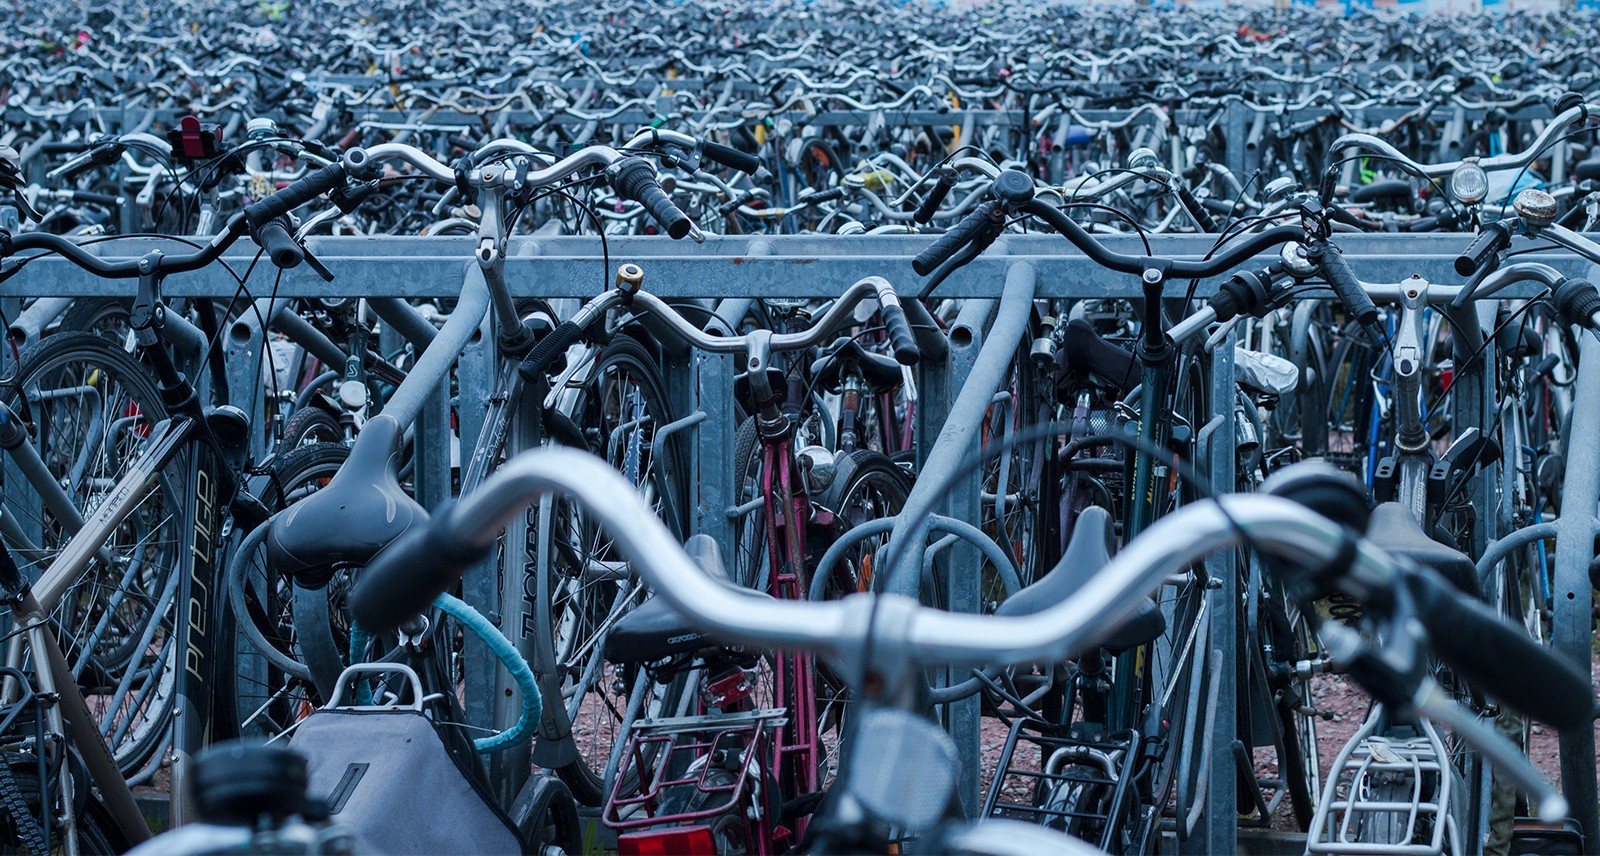 If I Could Own Only One Type of Bicycle, What Should It Be?